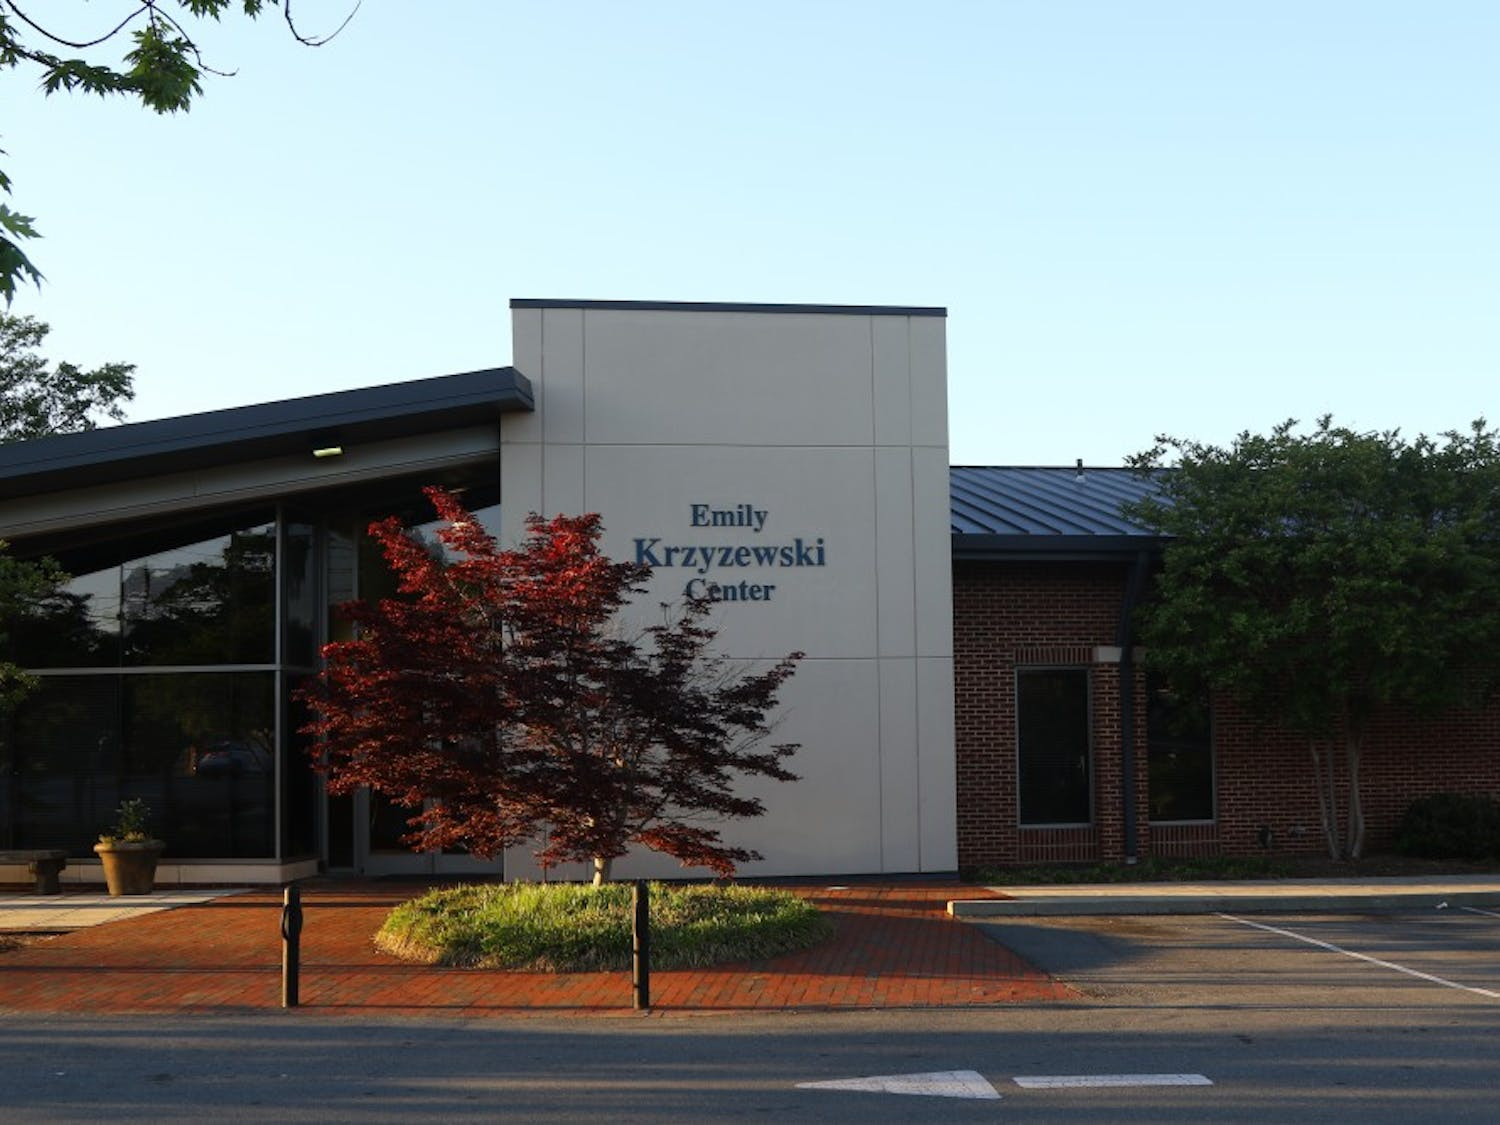 Durham's Emily Krzyzewski Center has helped students prepare for college using tutoring and counseling since it opened in 2006.